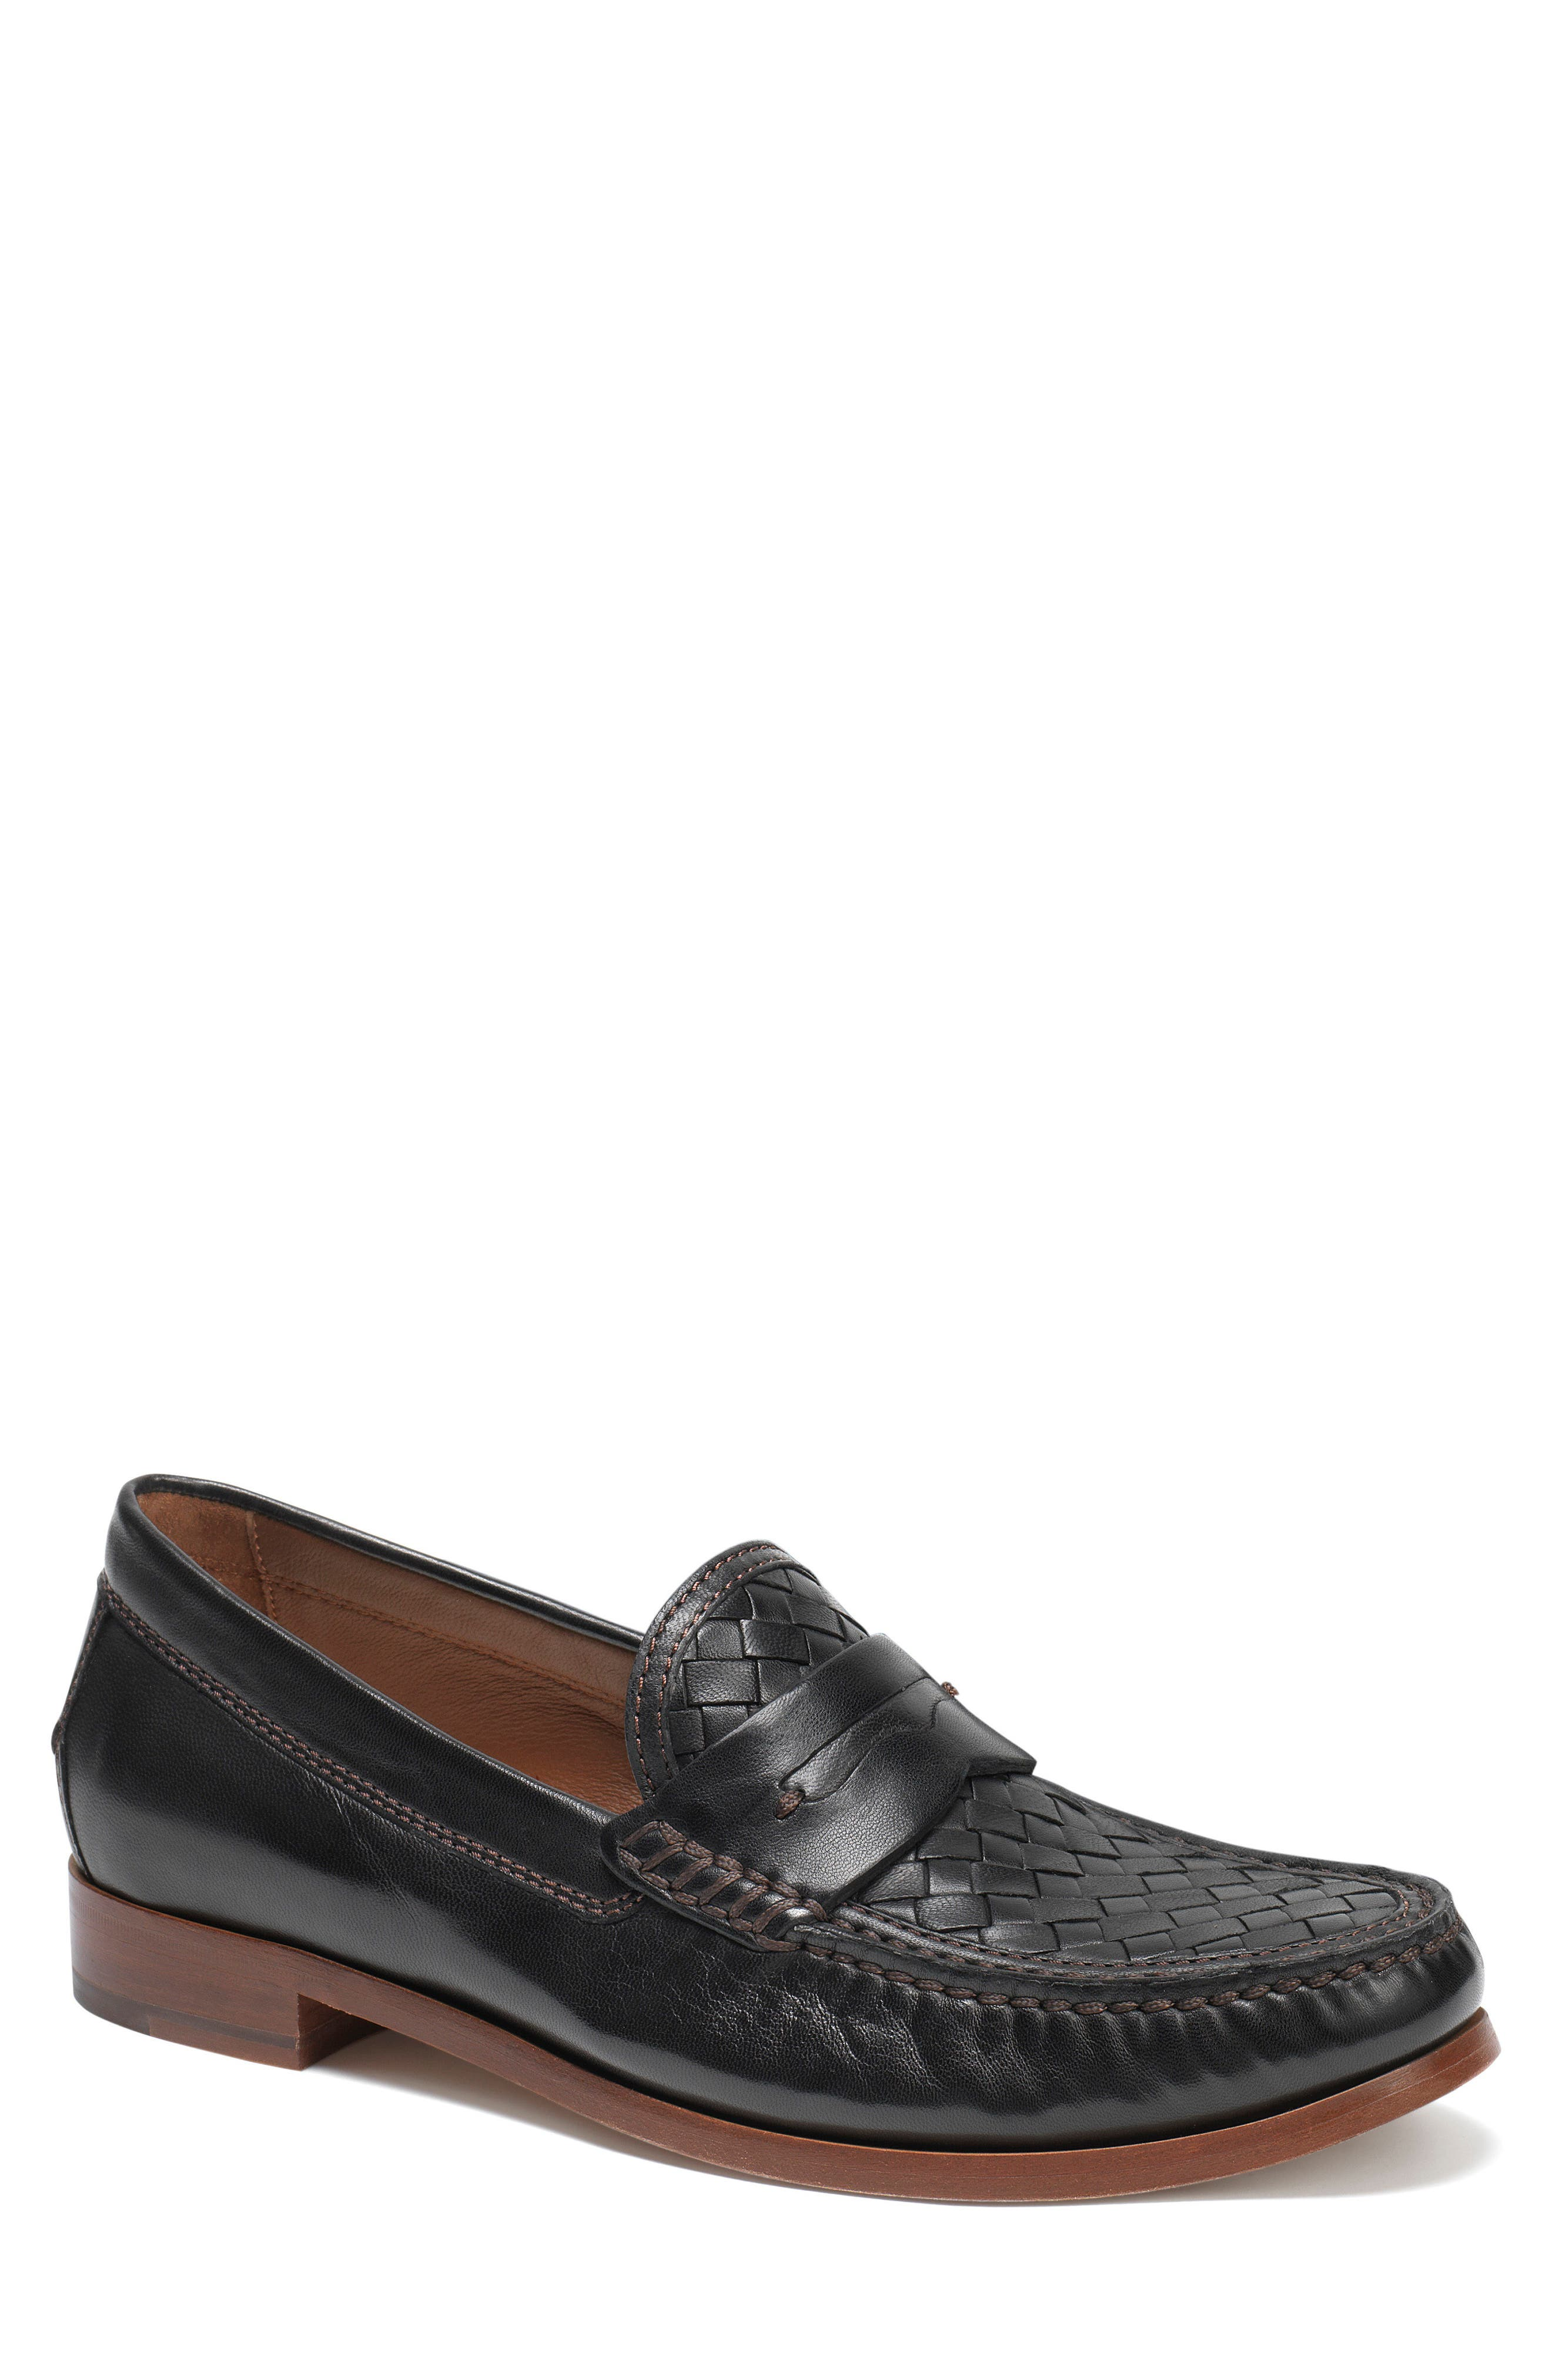 Slade Water Resistant Woven Penny Loafer,                             Main thumbnail 1, color,                             Black Leather